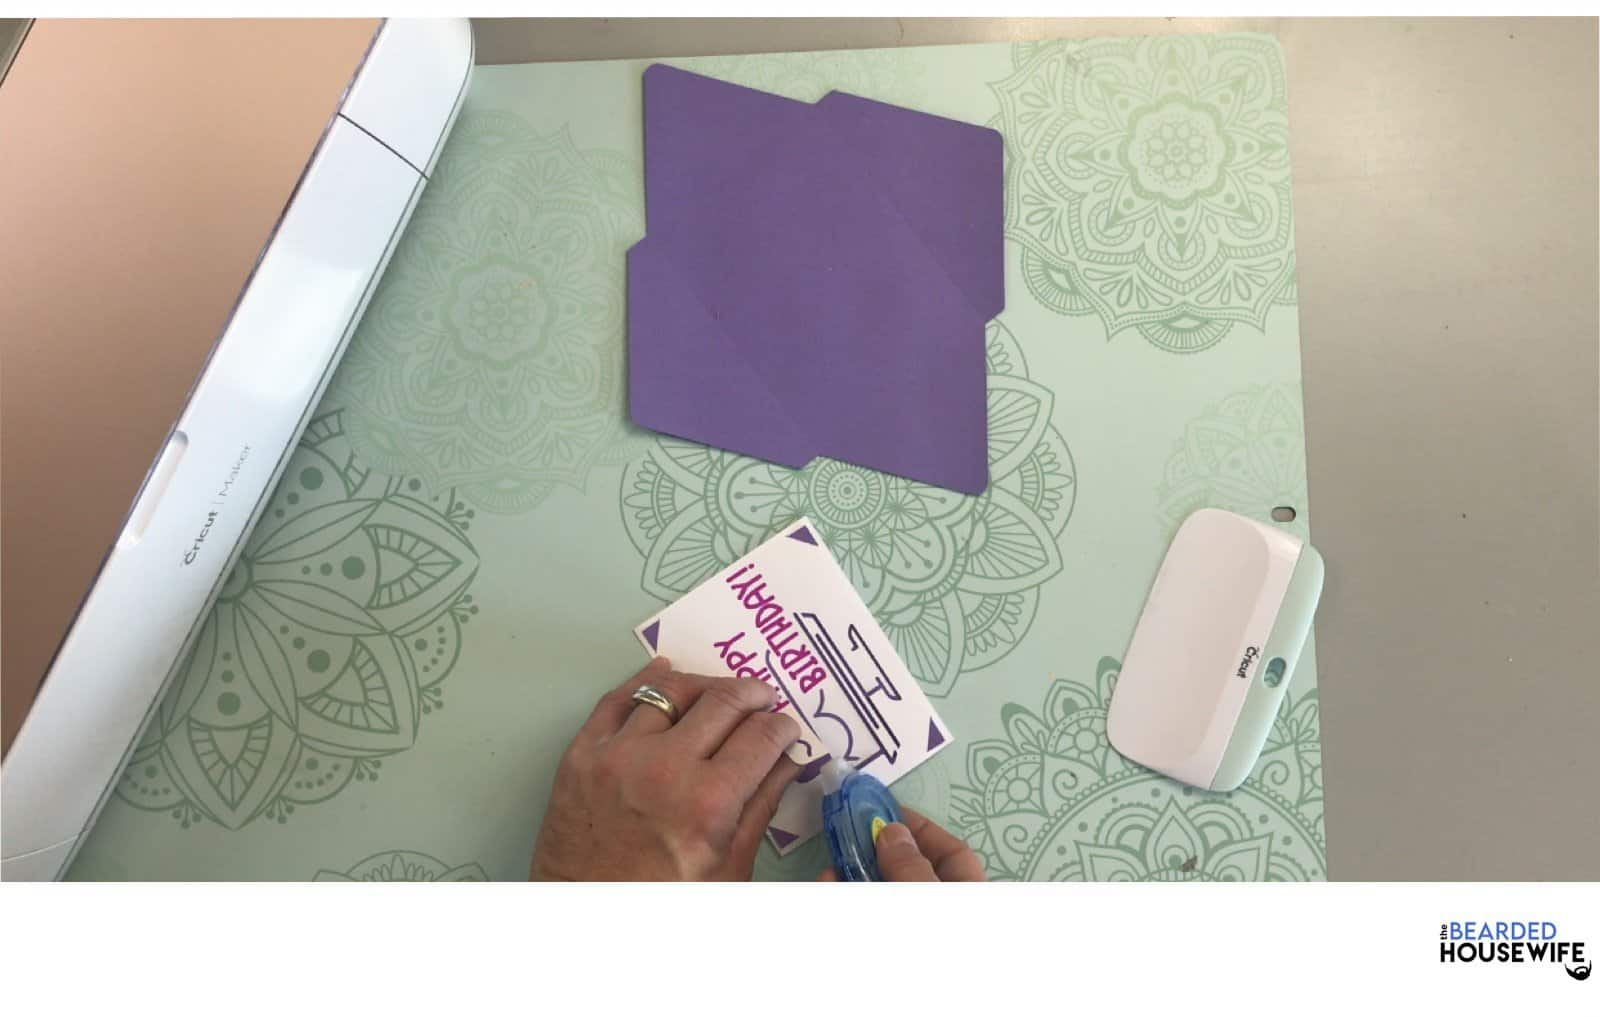 use glue or adhesive to adhere any loose areas of the card